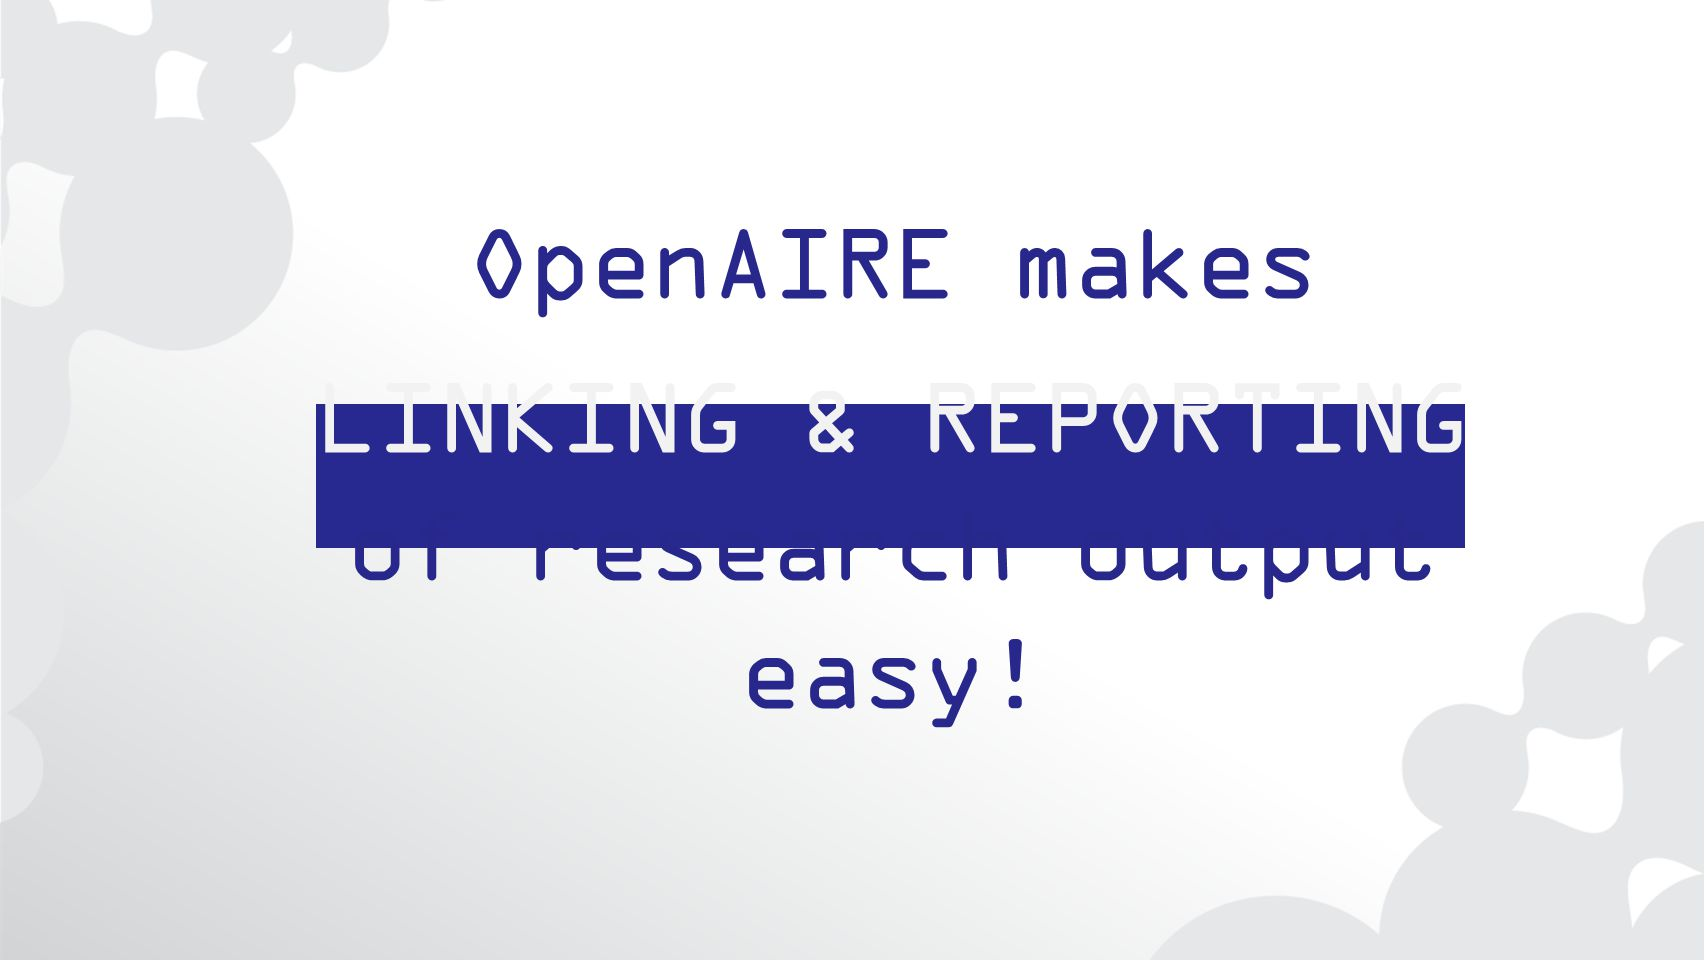 OpenAIRE makes LINKING & REPORTING of research output easy!